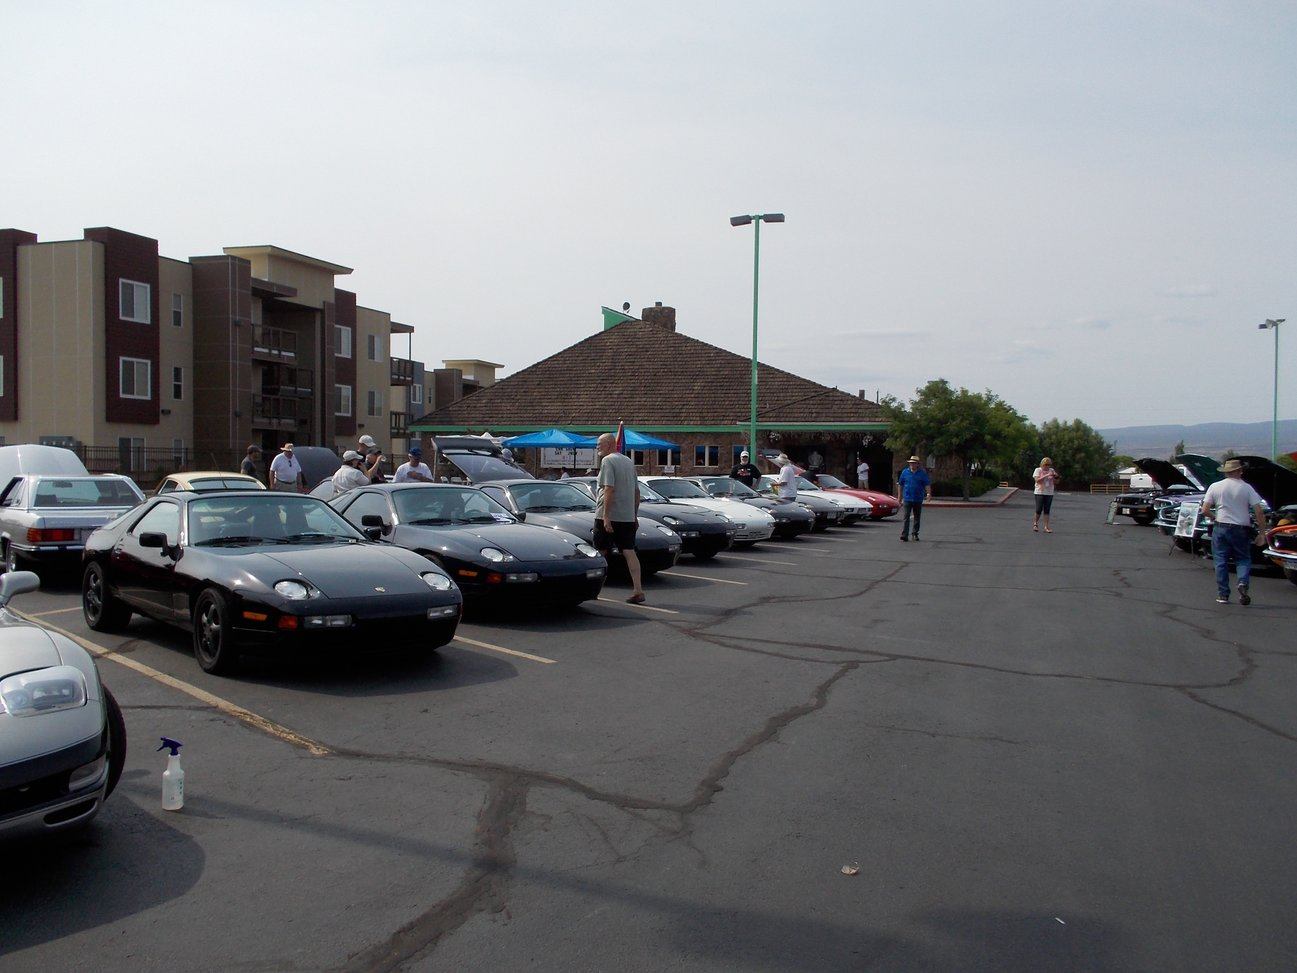 sharks in the badlands 928s event all the parked cars